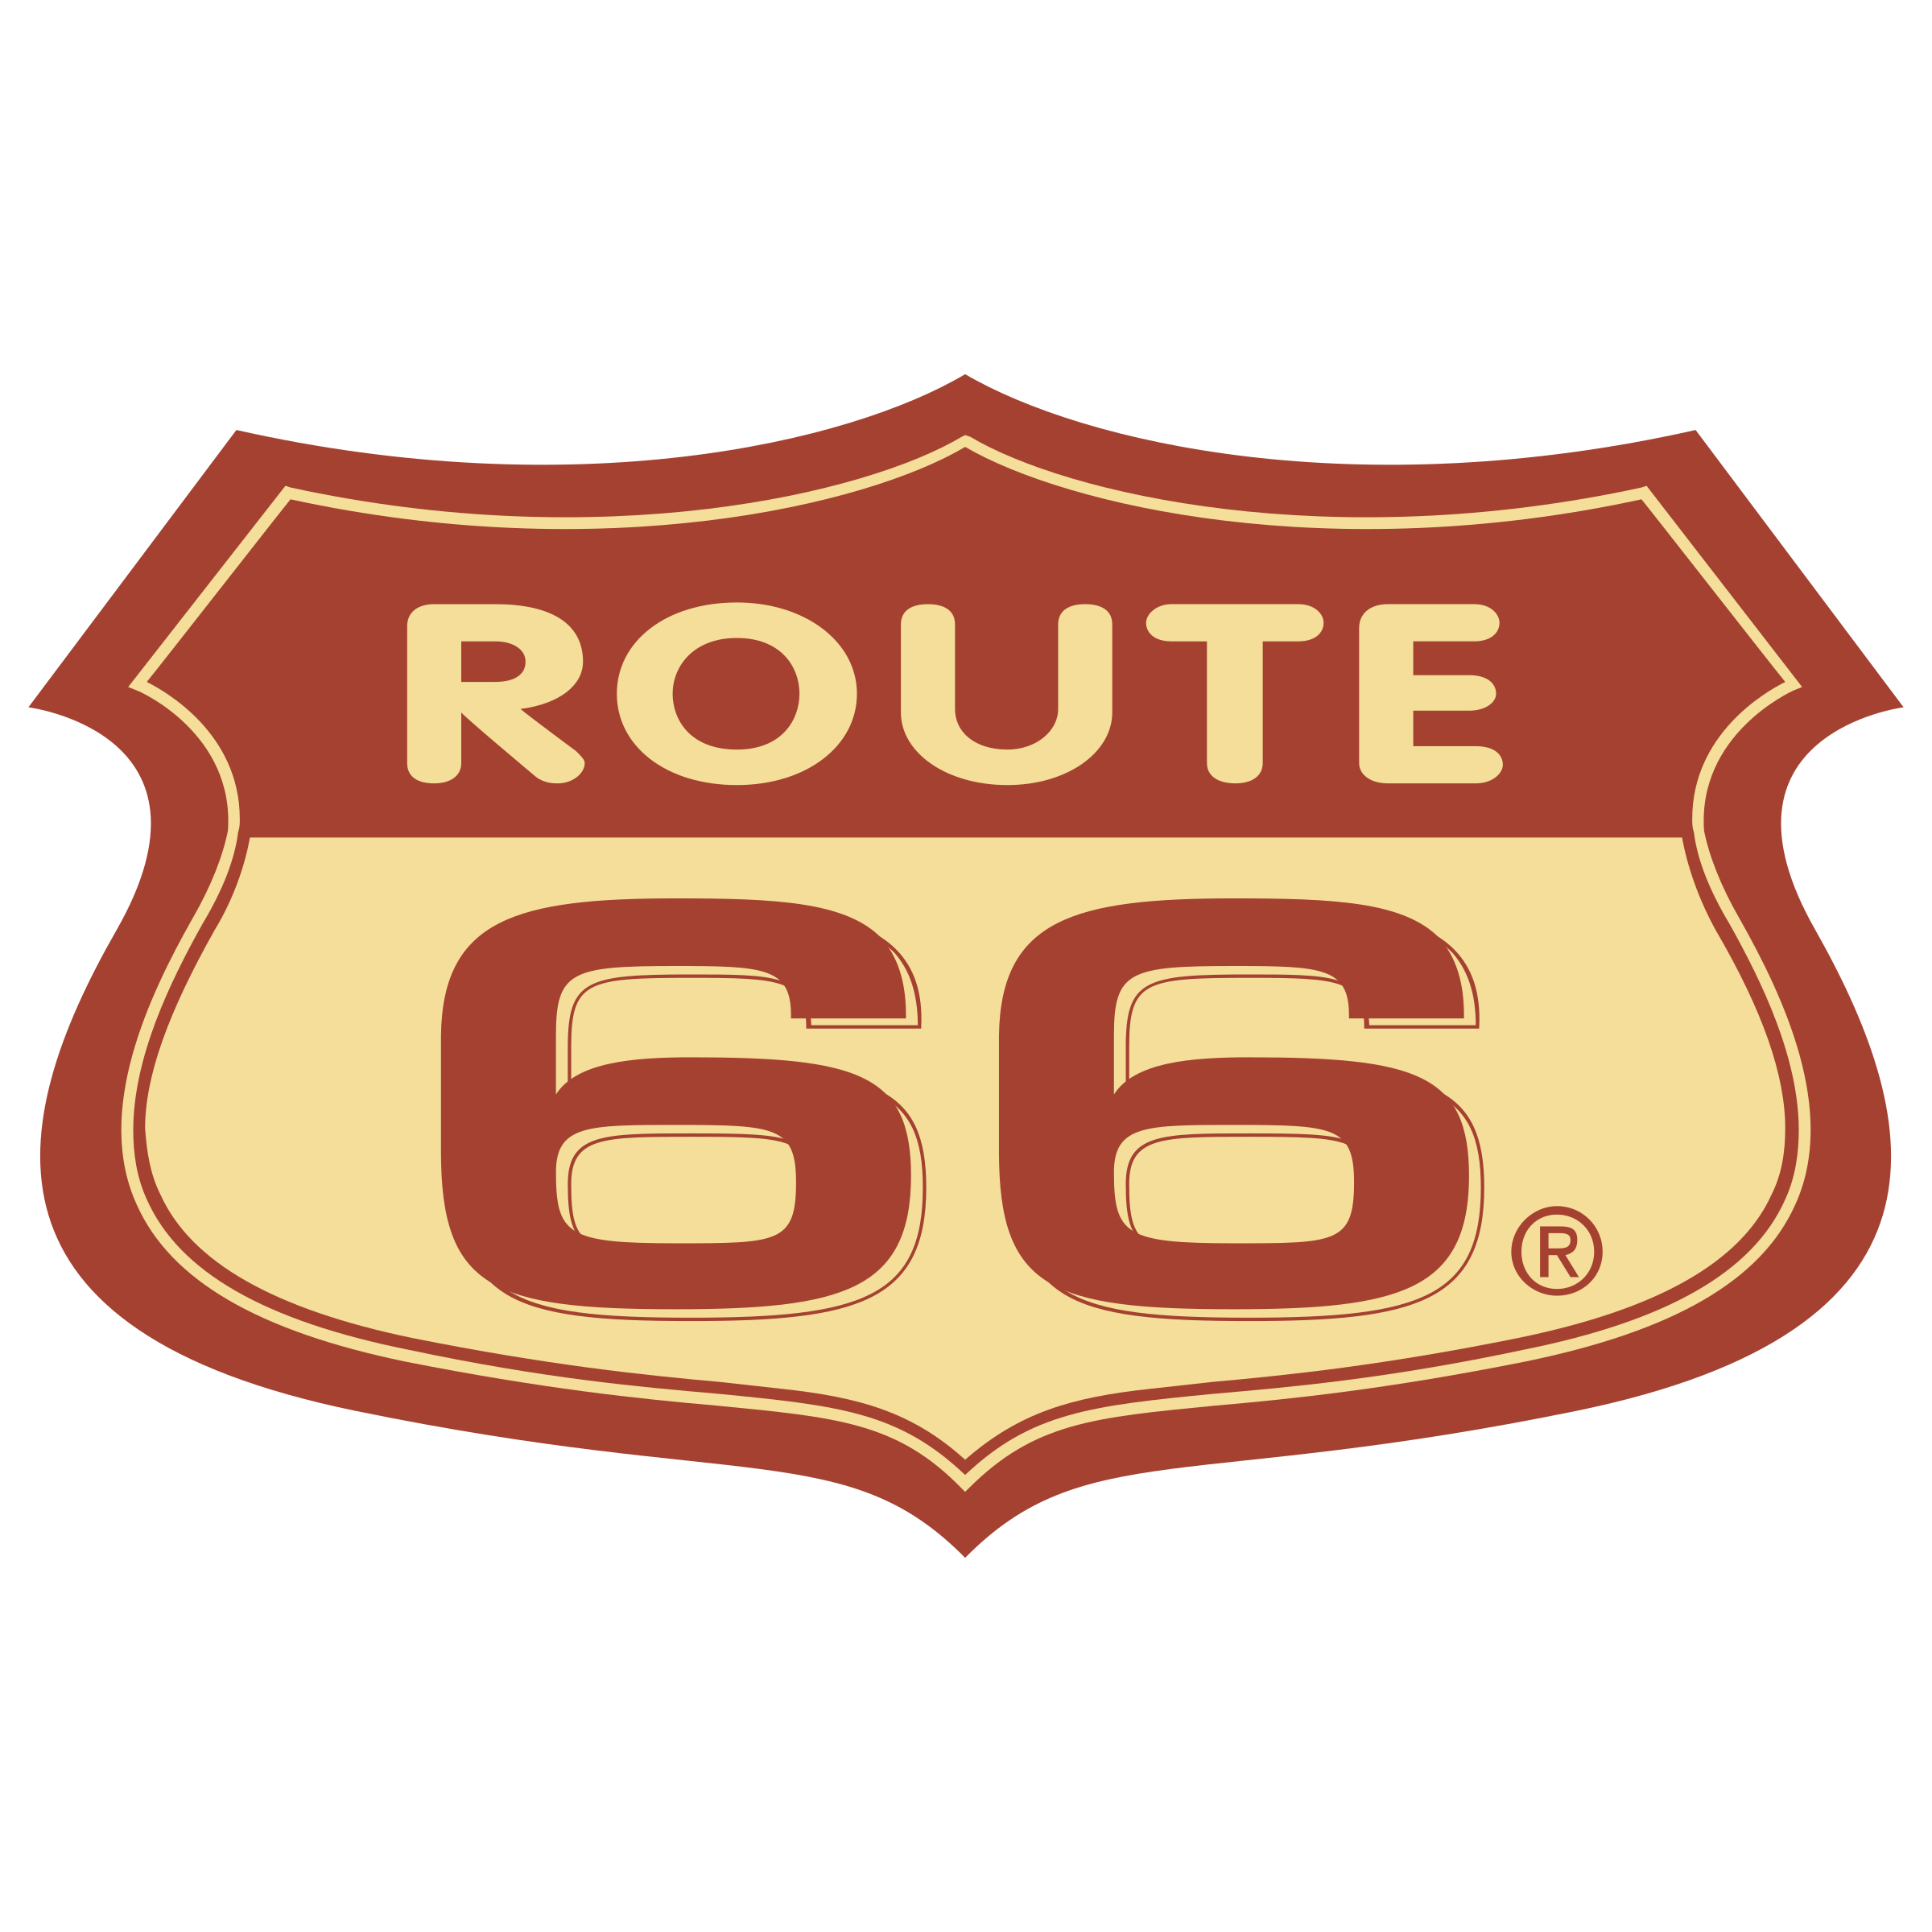 logo route 66. Black Bedroom Furniture Sets. Home Design Ideas